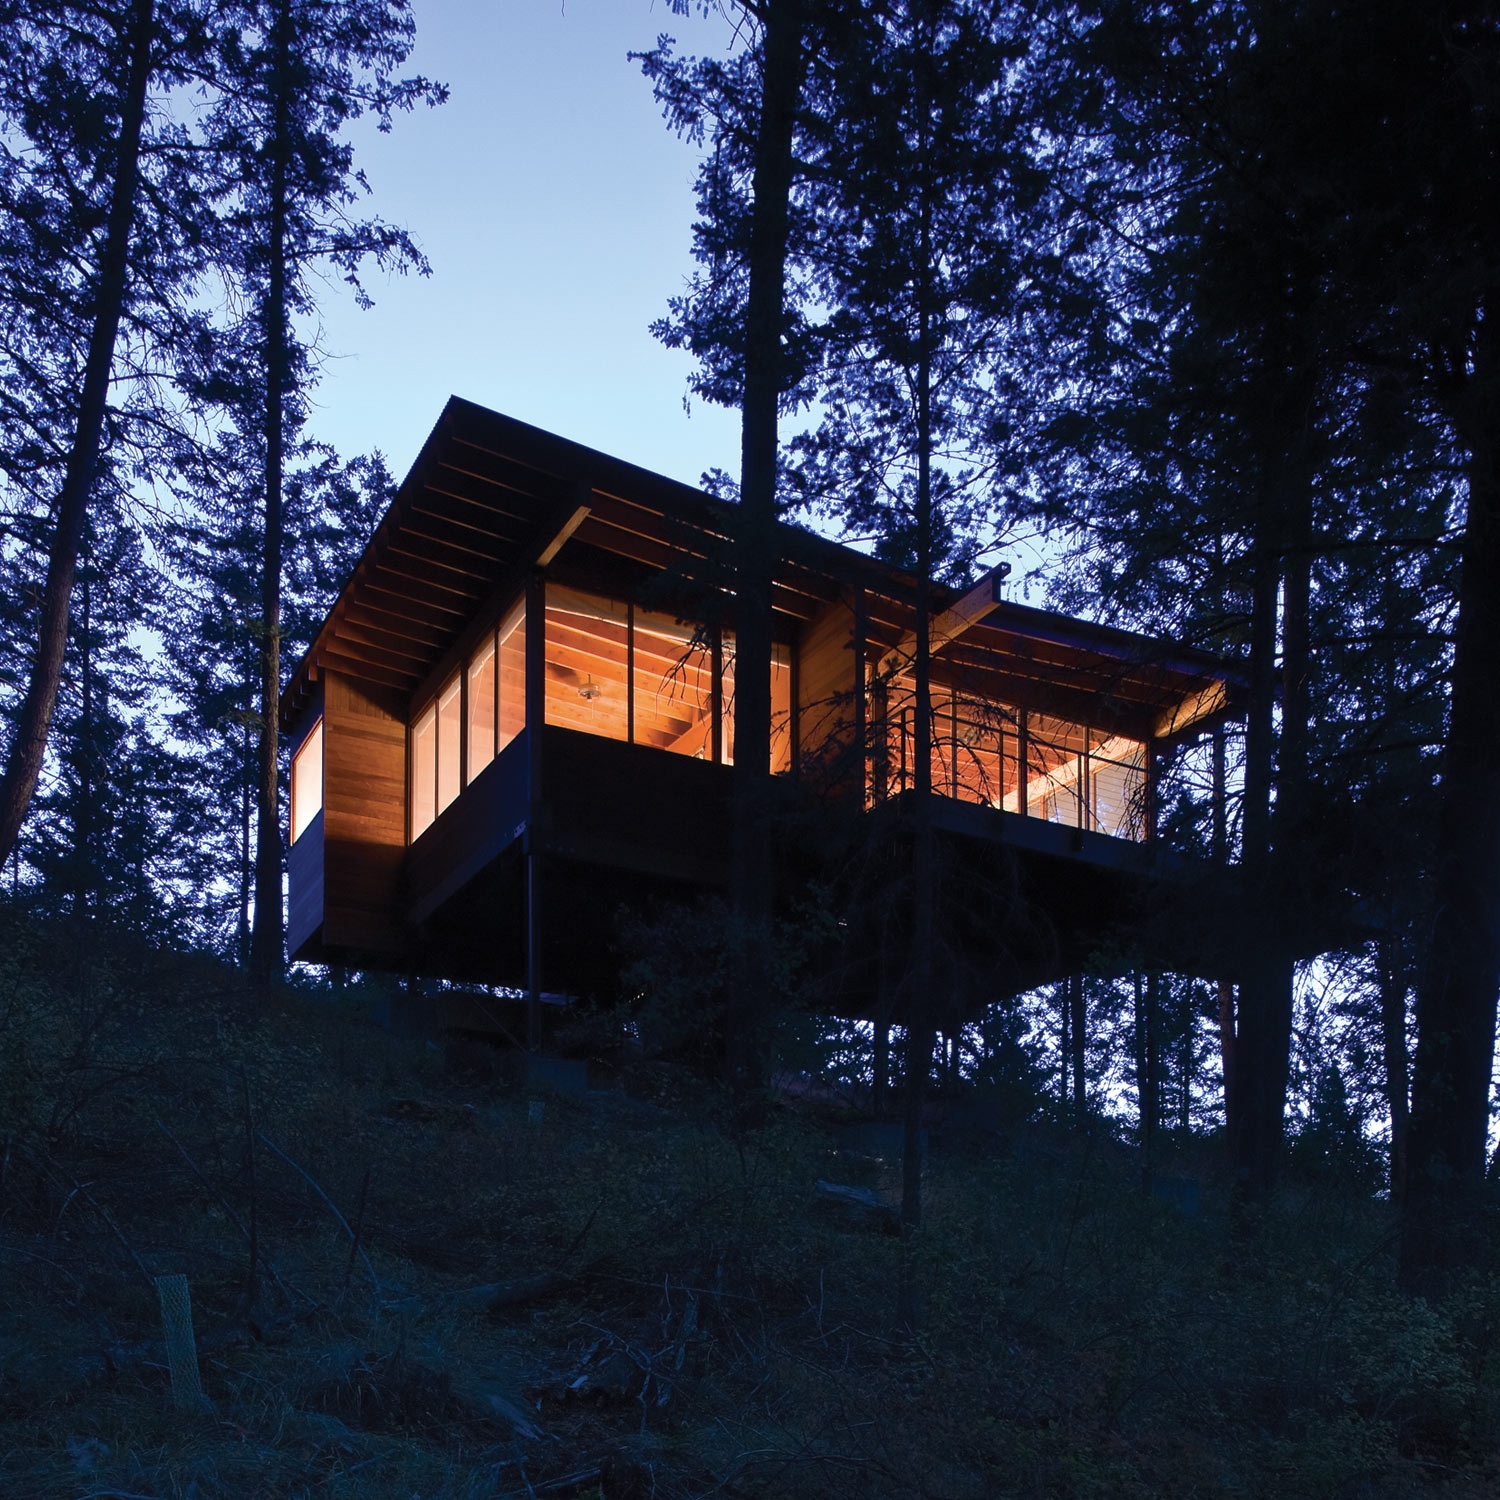 Modern cabin retreat by night